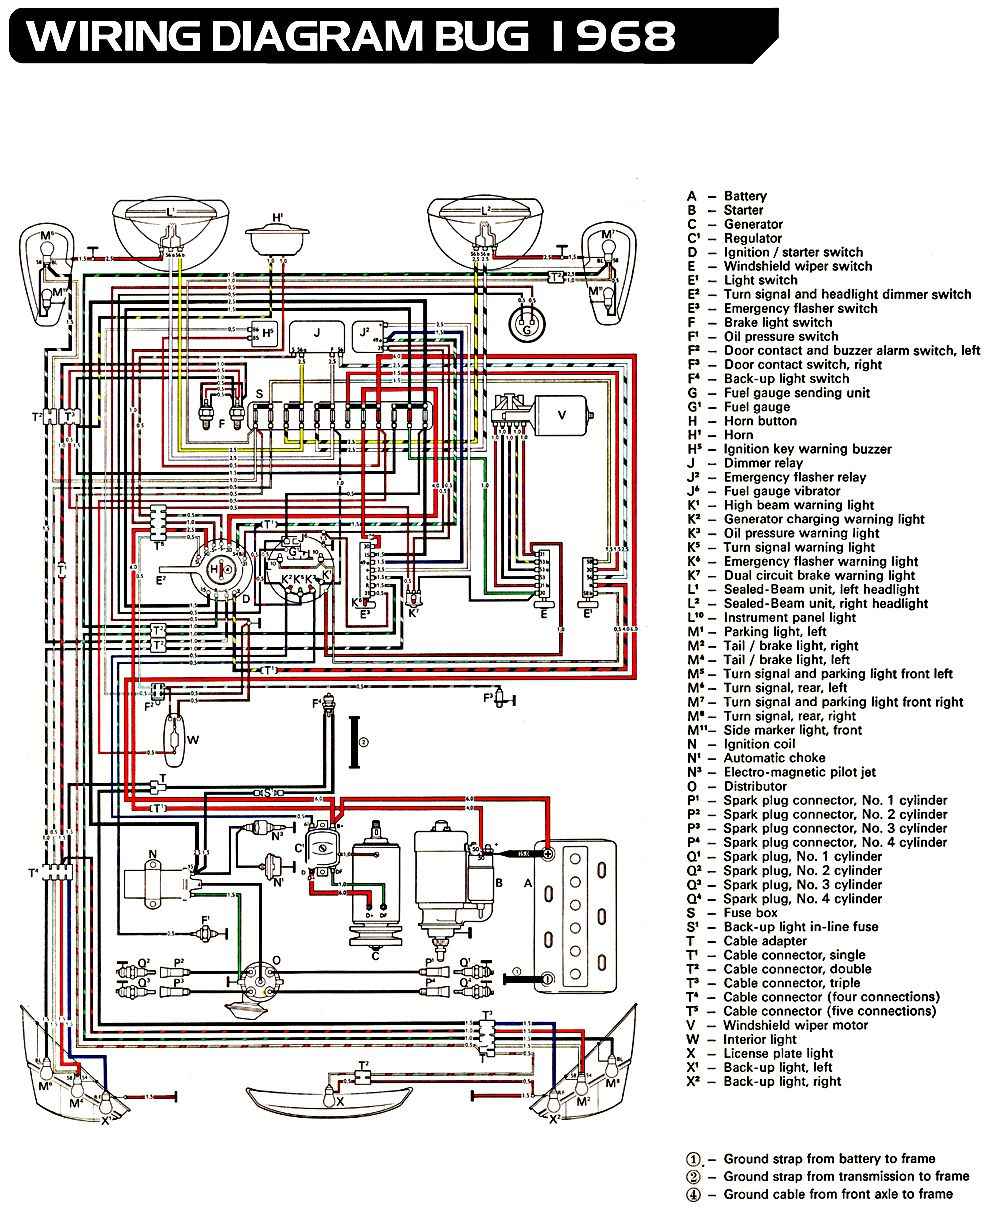 3a1908112d3826270ed5e3be362292bf jbug wiring harness 1970 vw beetle wiring harness \u2022 wiring DIY Lingerie Harness at virtualis.co